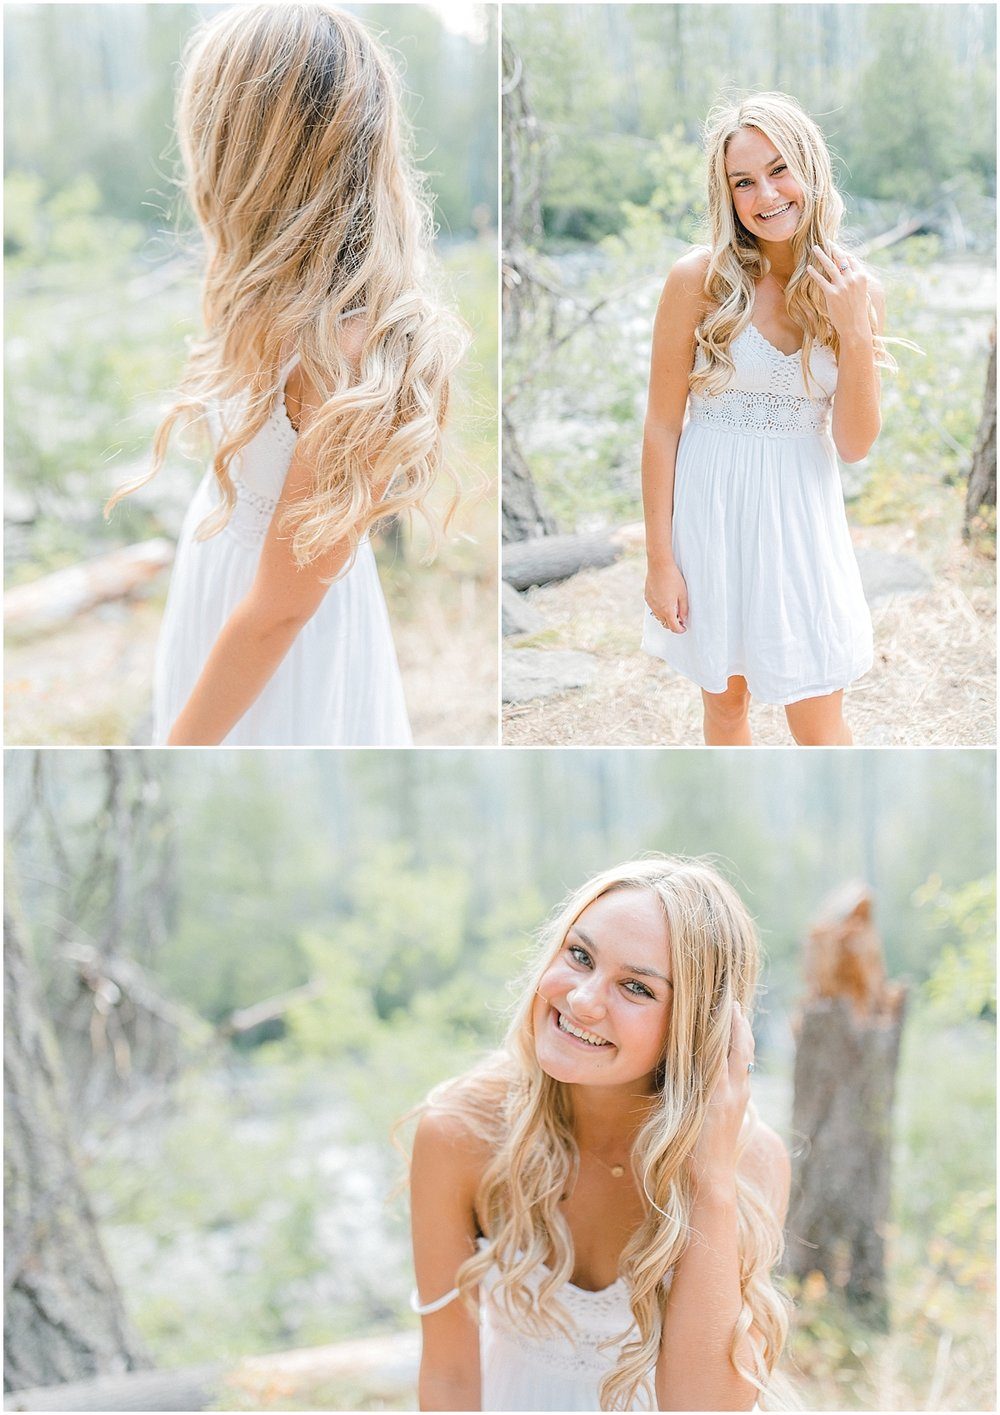 Emma Rose Company | Seattle Wedding and Portrait Photographer PNW | Light and Airy Style | Senior Style Guide What to Wear | Senior Portraits Leavenworth, Washington | Kindred Presets Film Style_0016.jpg